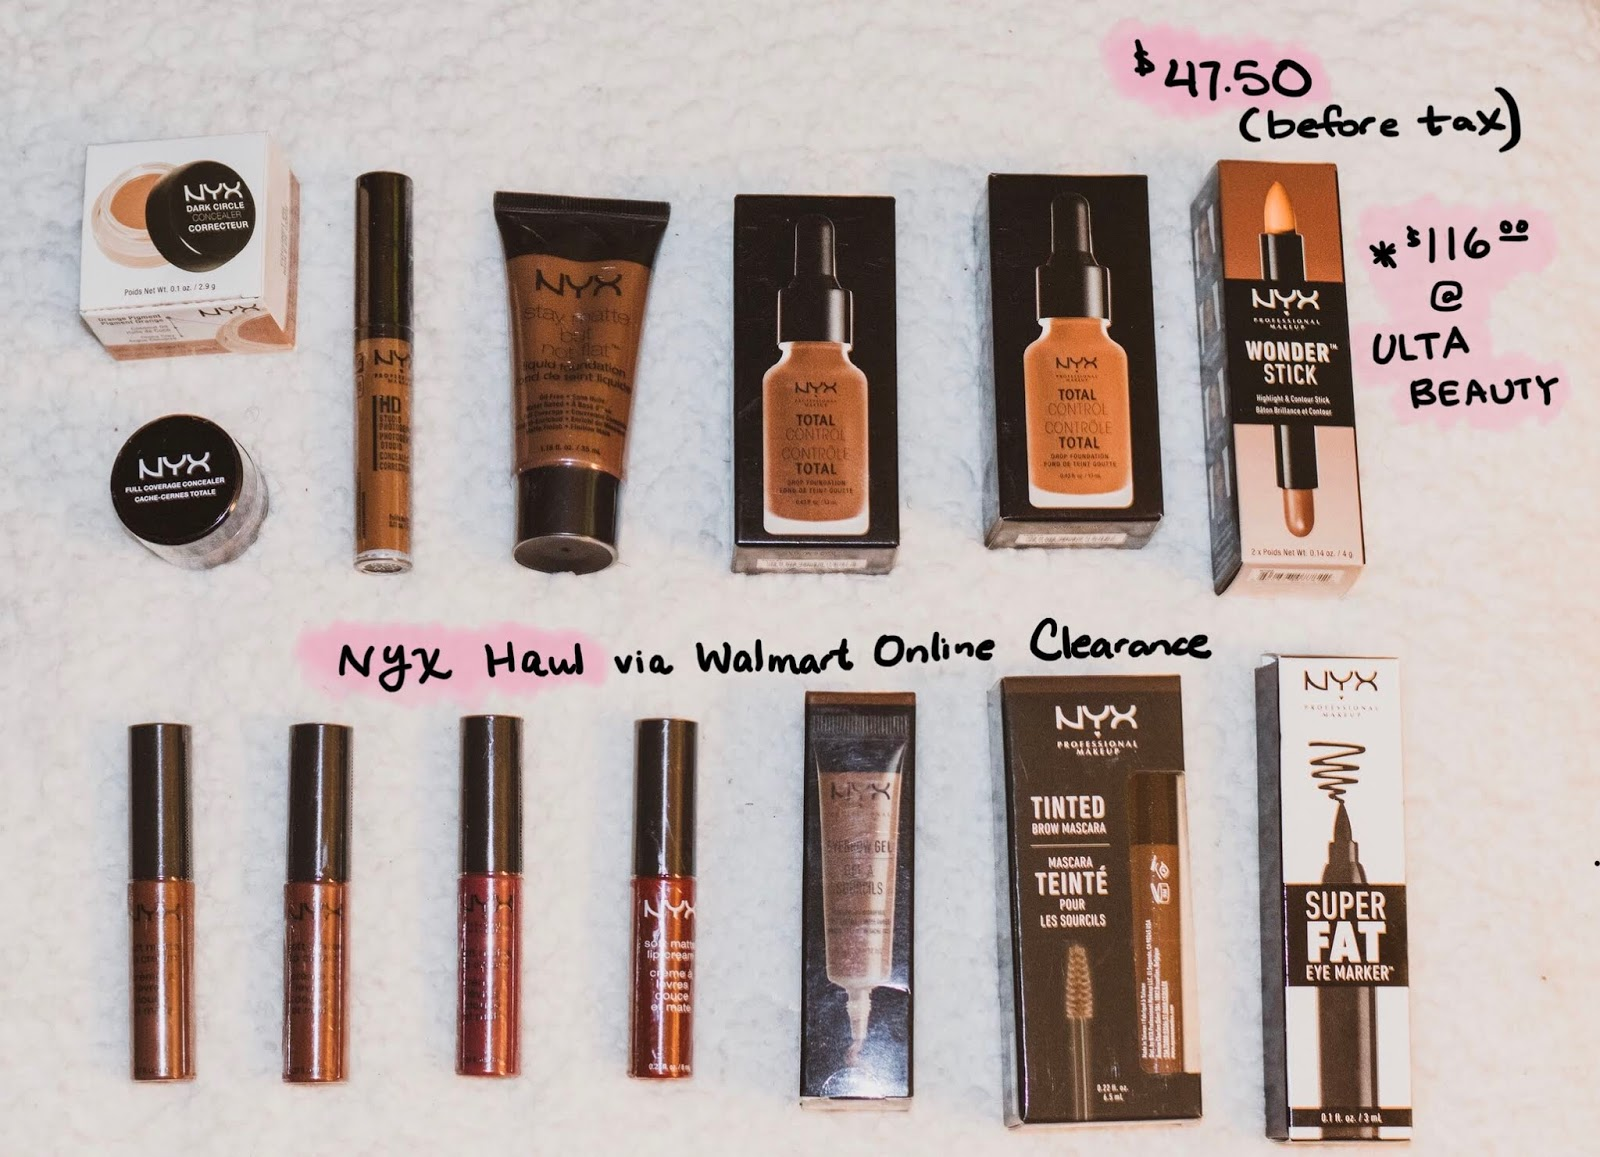 NYX Professional Makeup Haul, concealer, soft matte lip cream, lipstick, lipgloss, clearance, foundation, matte foundation, drop foundation, eyebrow mascara, eyebrow gel, eyeliner